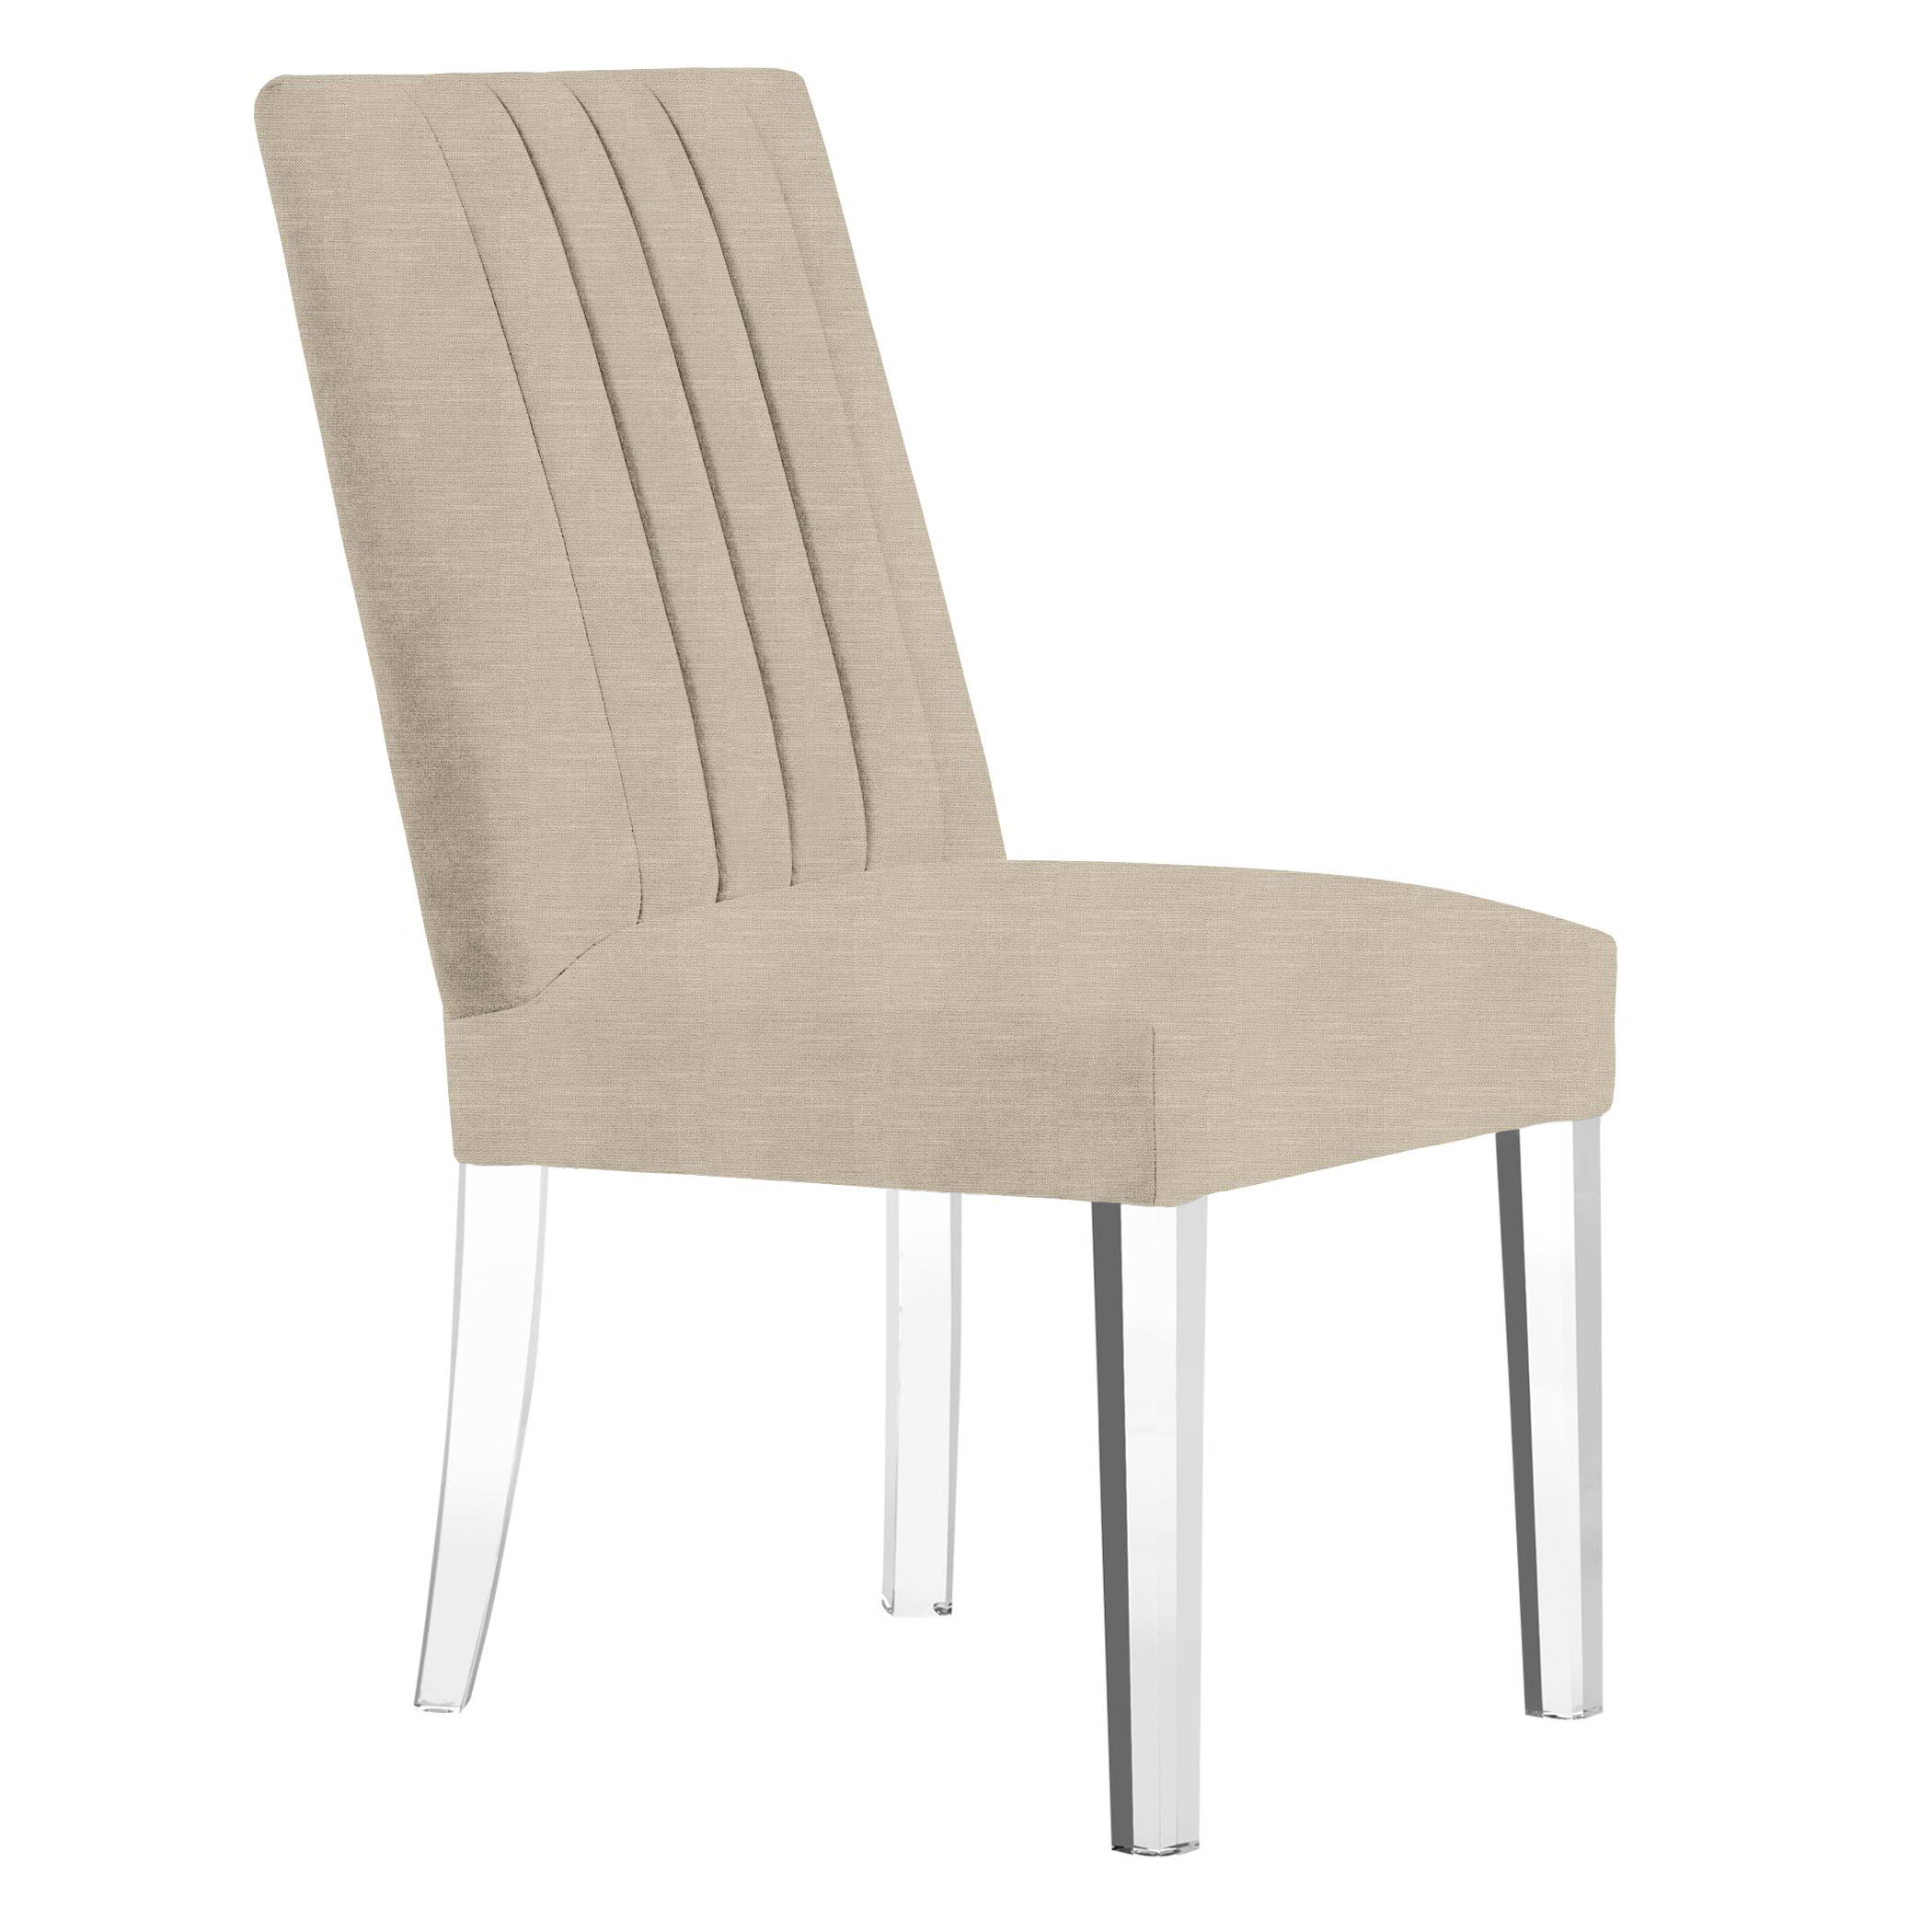 Easton Dining Chair - Acrylic